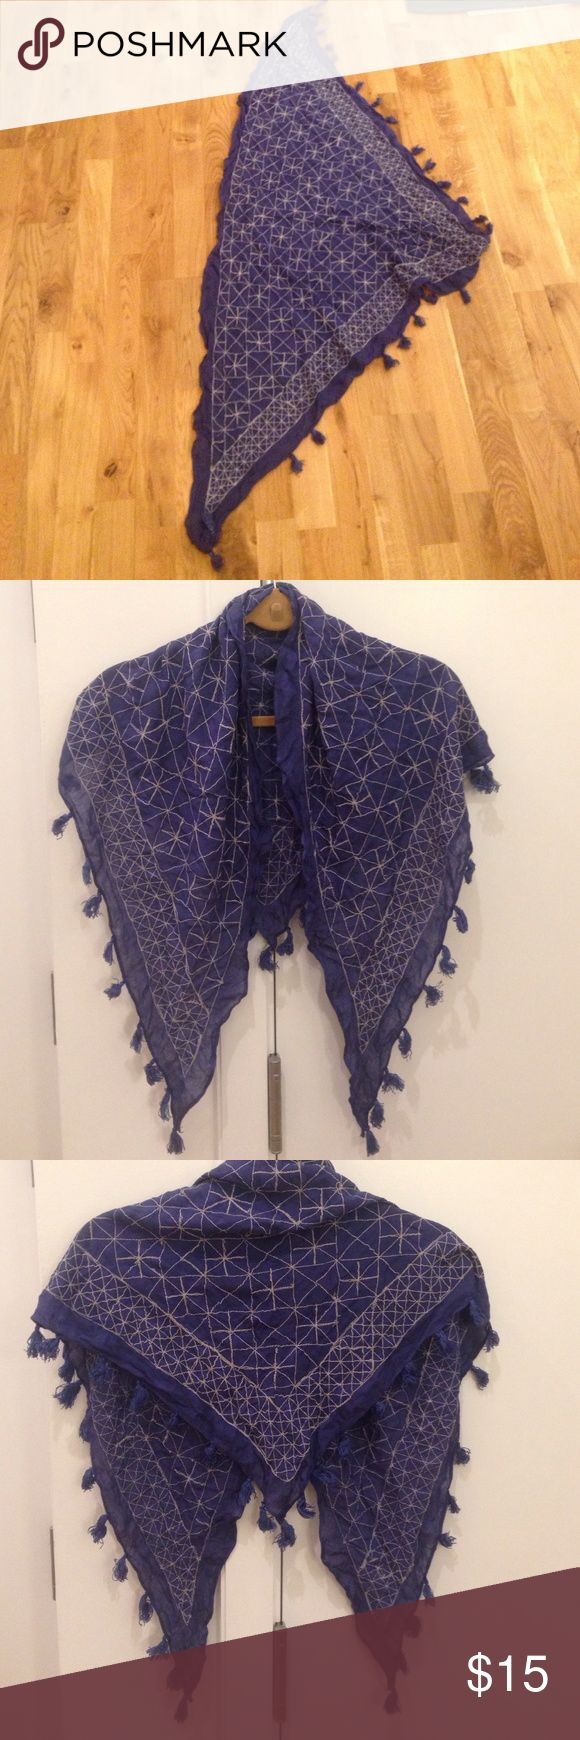 Blue Scarf with White Stitching and Tassles Blue Scarf with White Stitching and Tassles Accessories Scarves & Wraps